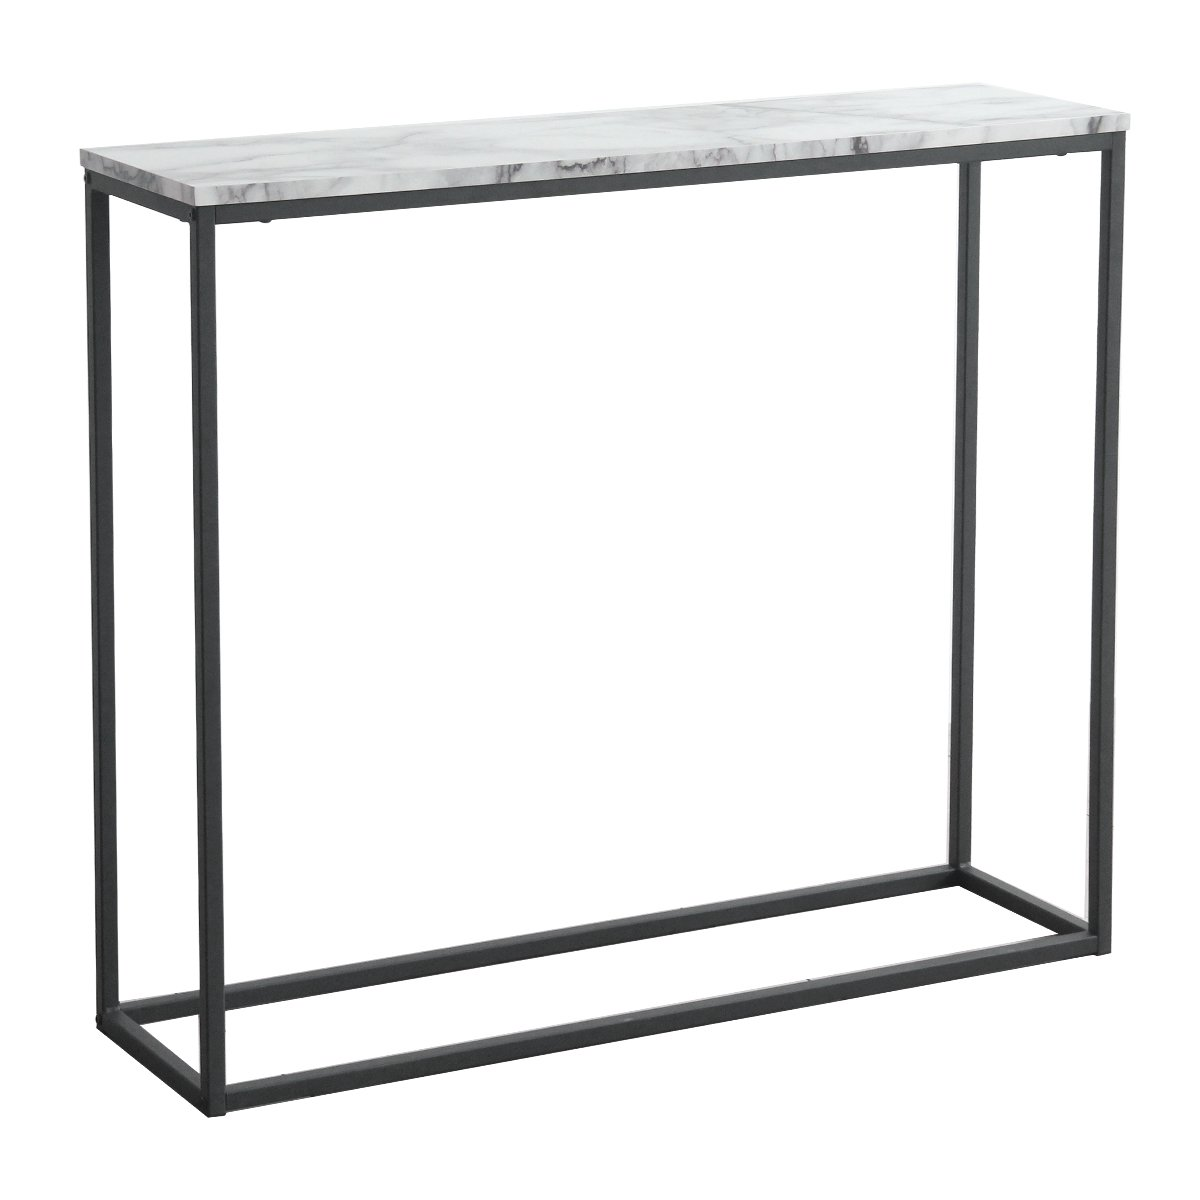 Incroyable Tilly Lin Modern Accent Faux Marble Console Table, Black Metal Frame, For  Hallway Entryway Living Room, Entrance Hall Furniture, Carrara